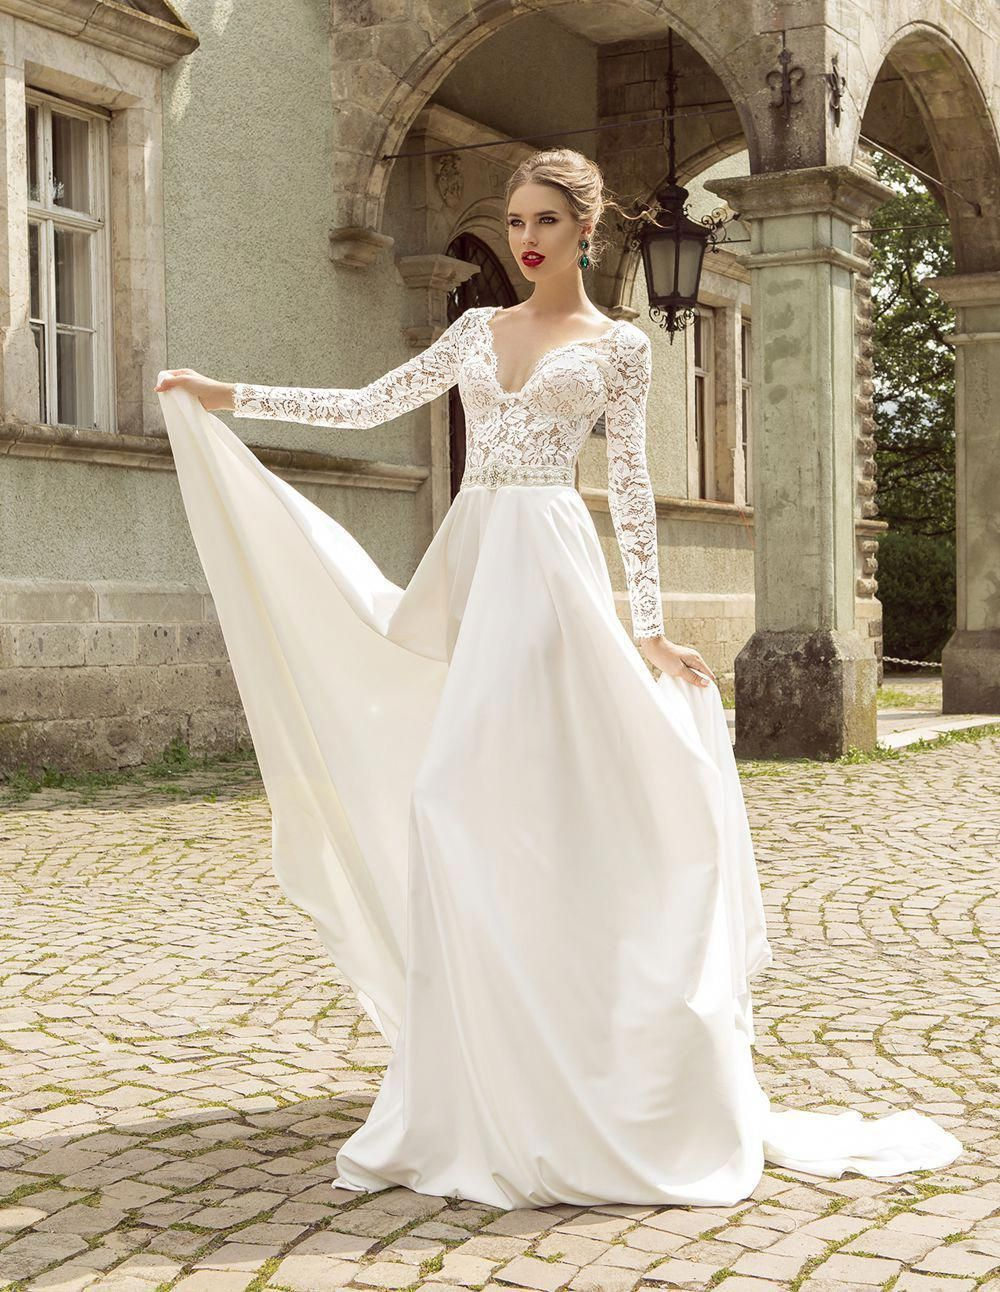 8e1398e8d535 Summer Style Lace Long Sleeve Wedding Dresses 2016 V Neck A Line Lace  Wedding Dress Beading Beach Bridal Gowns-in Wedding Dresses from Weddings   Events  on ...